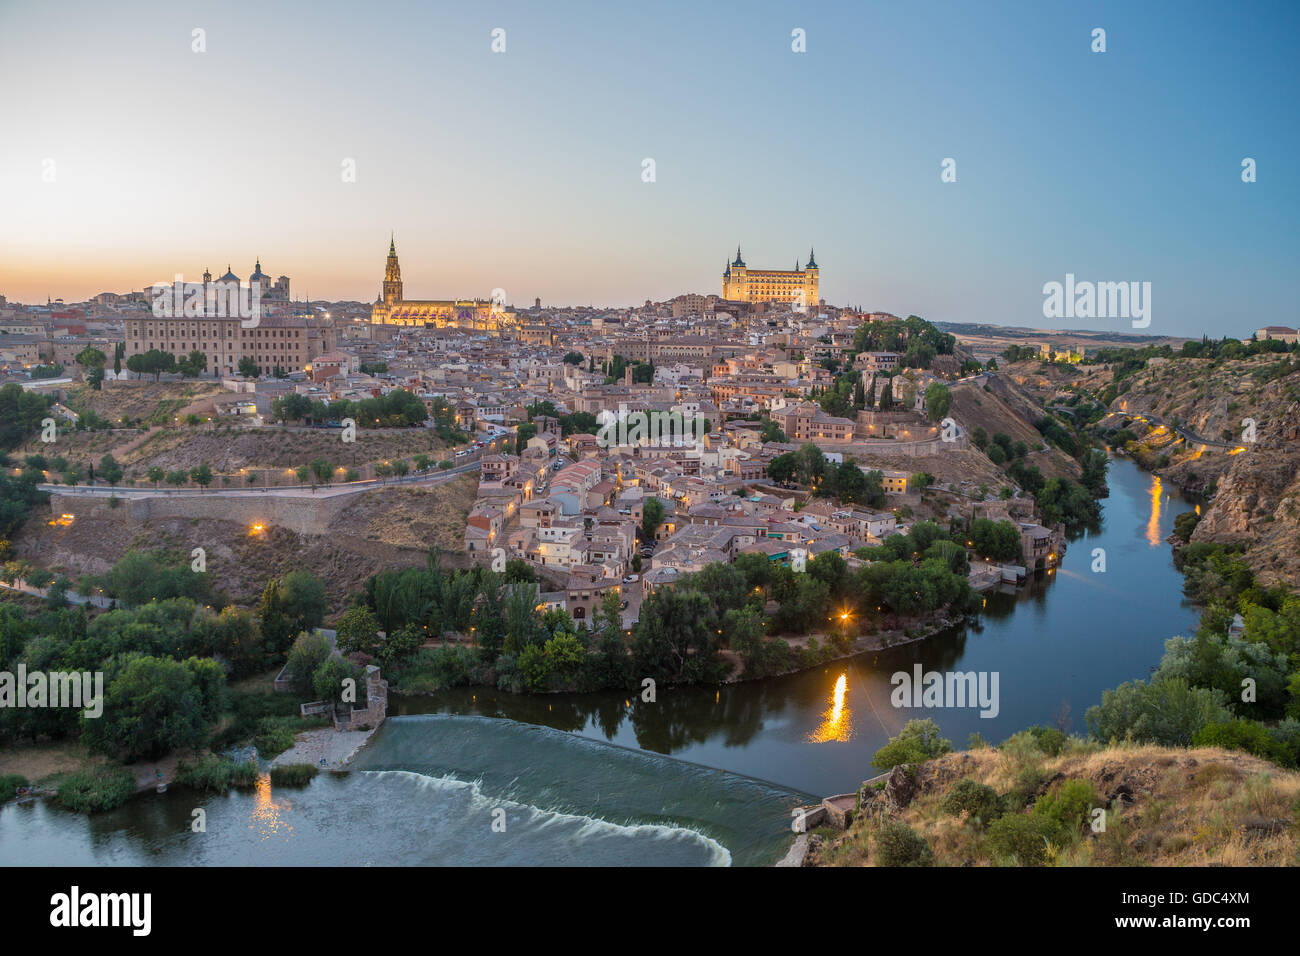 Spain,Toledo City,Tajo river,skyline, - Stock Image